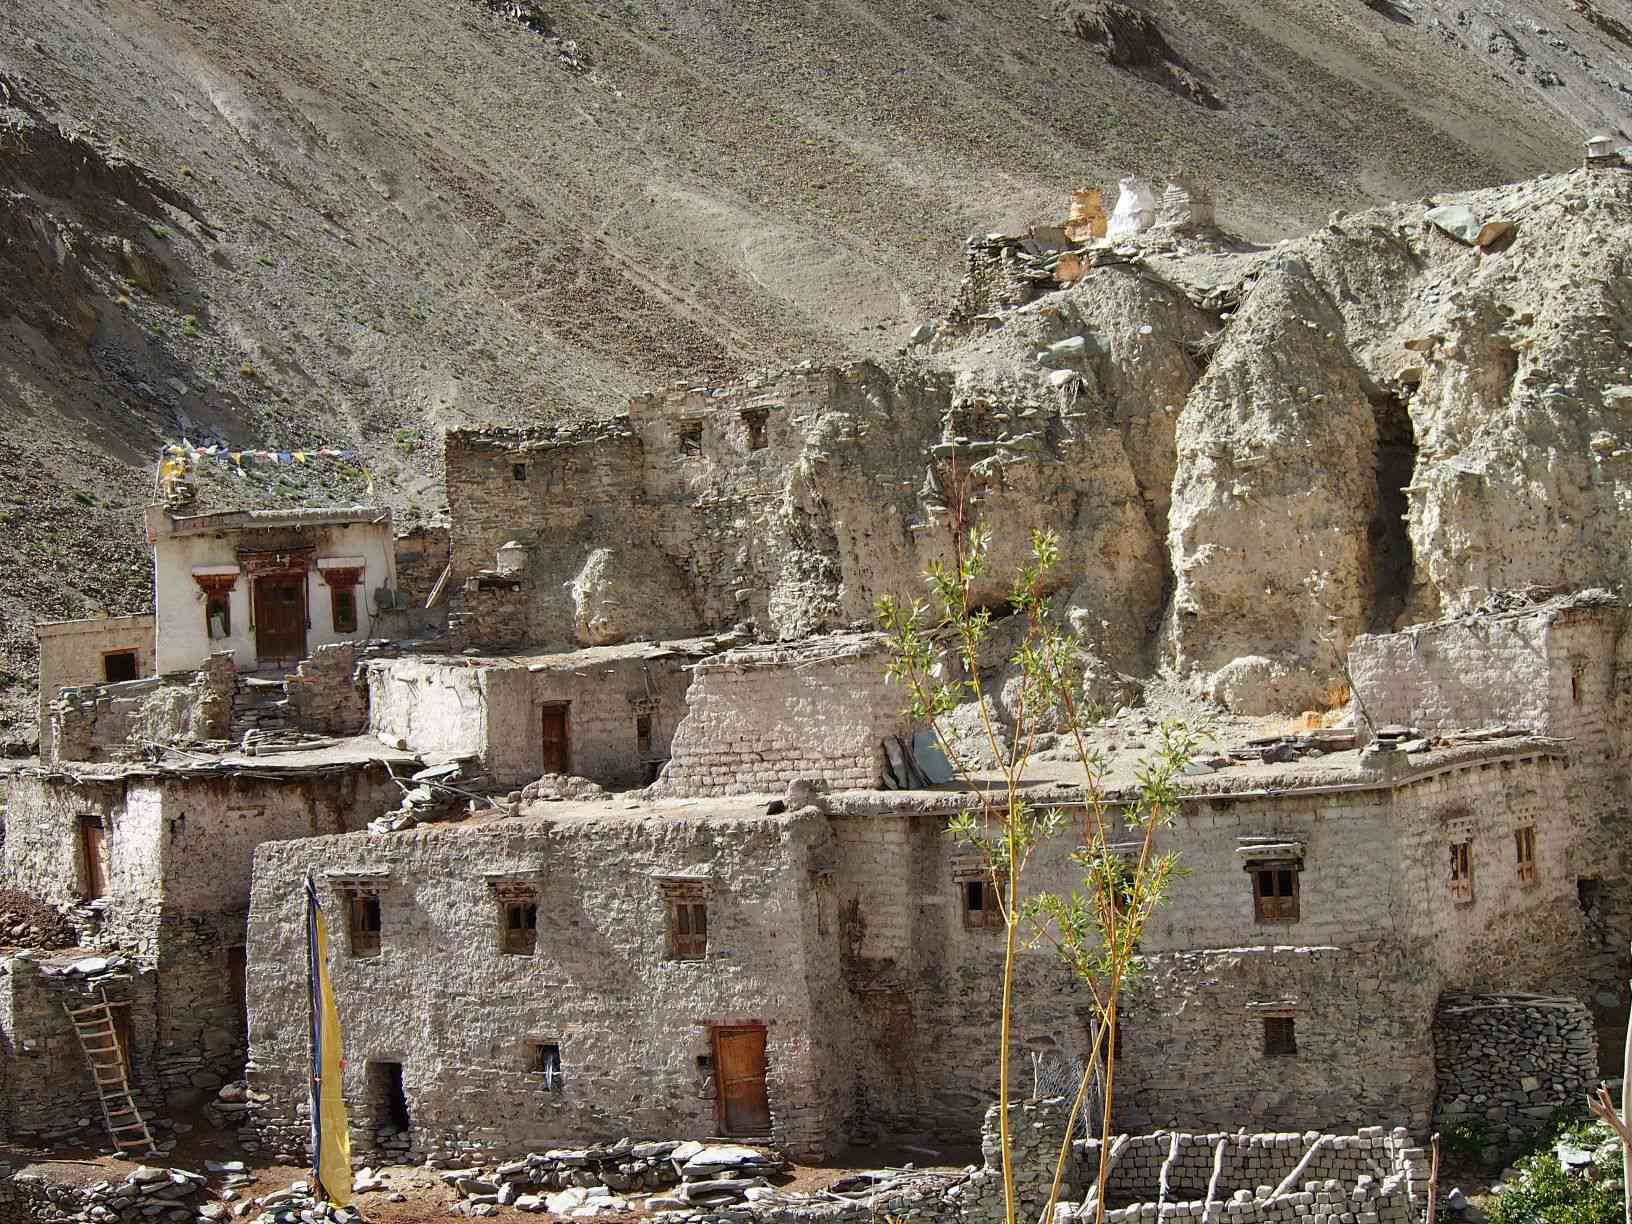 brown rock houses built into a cliff